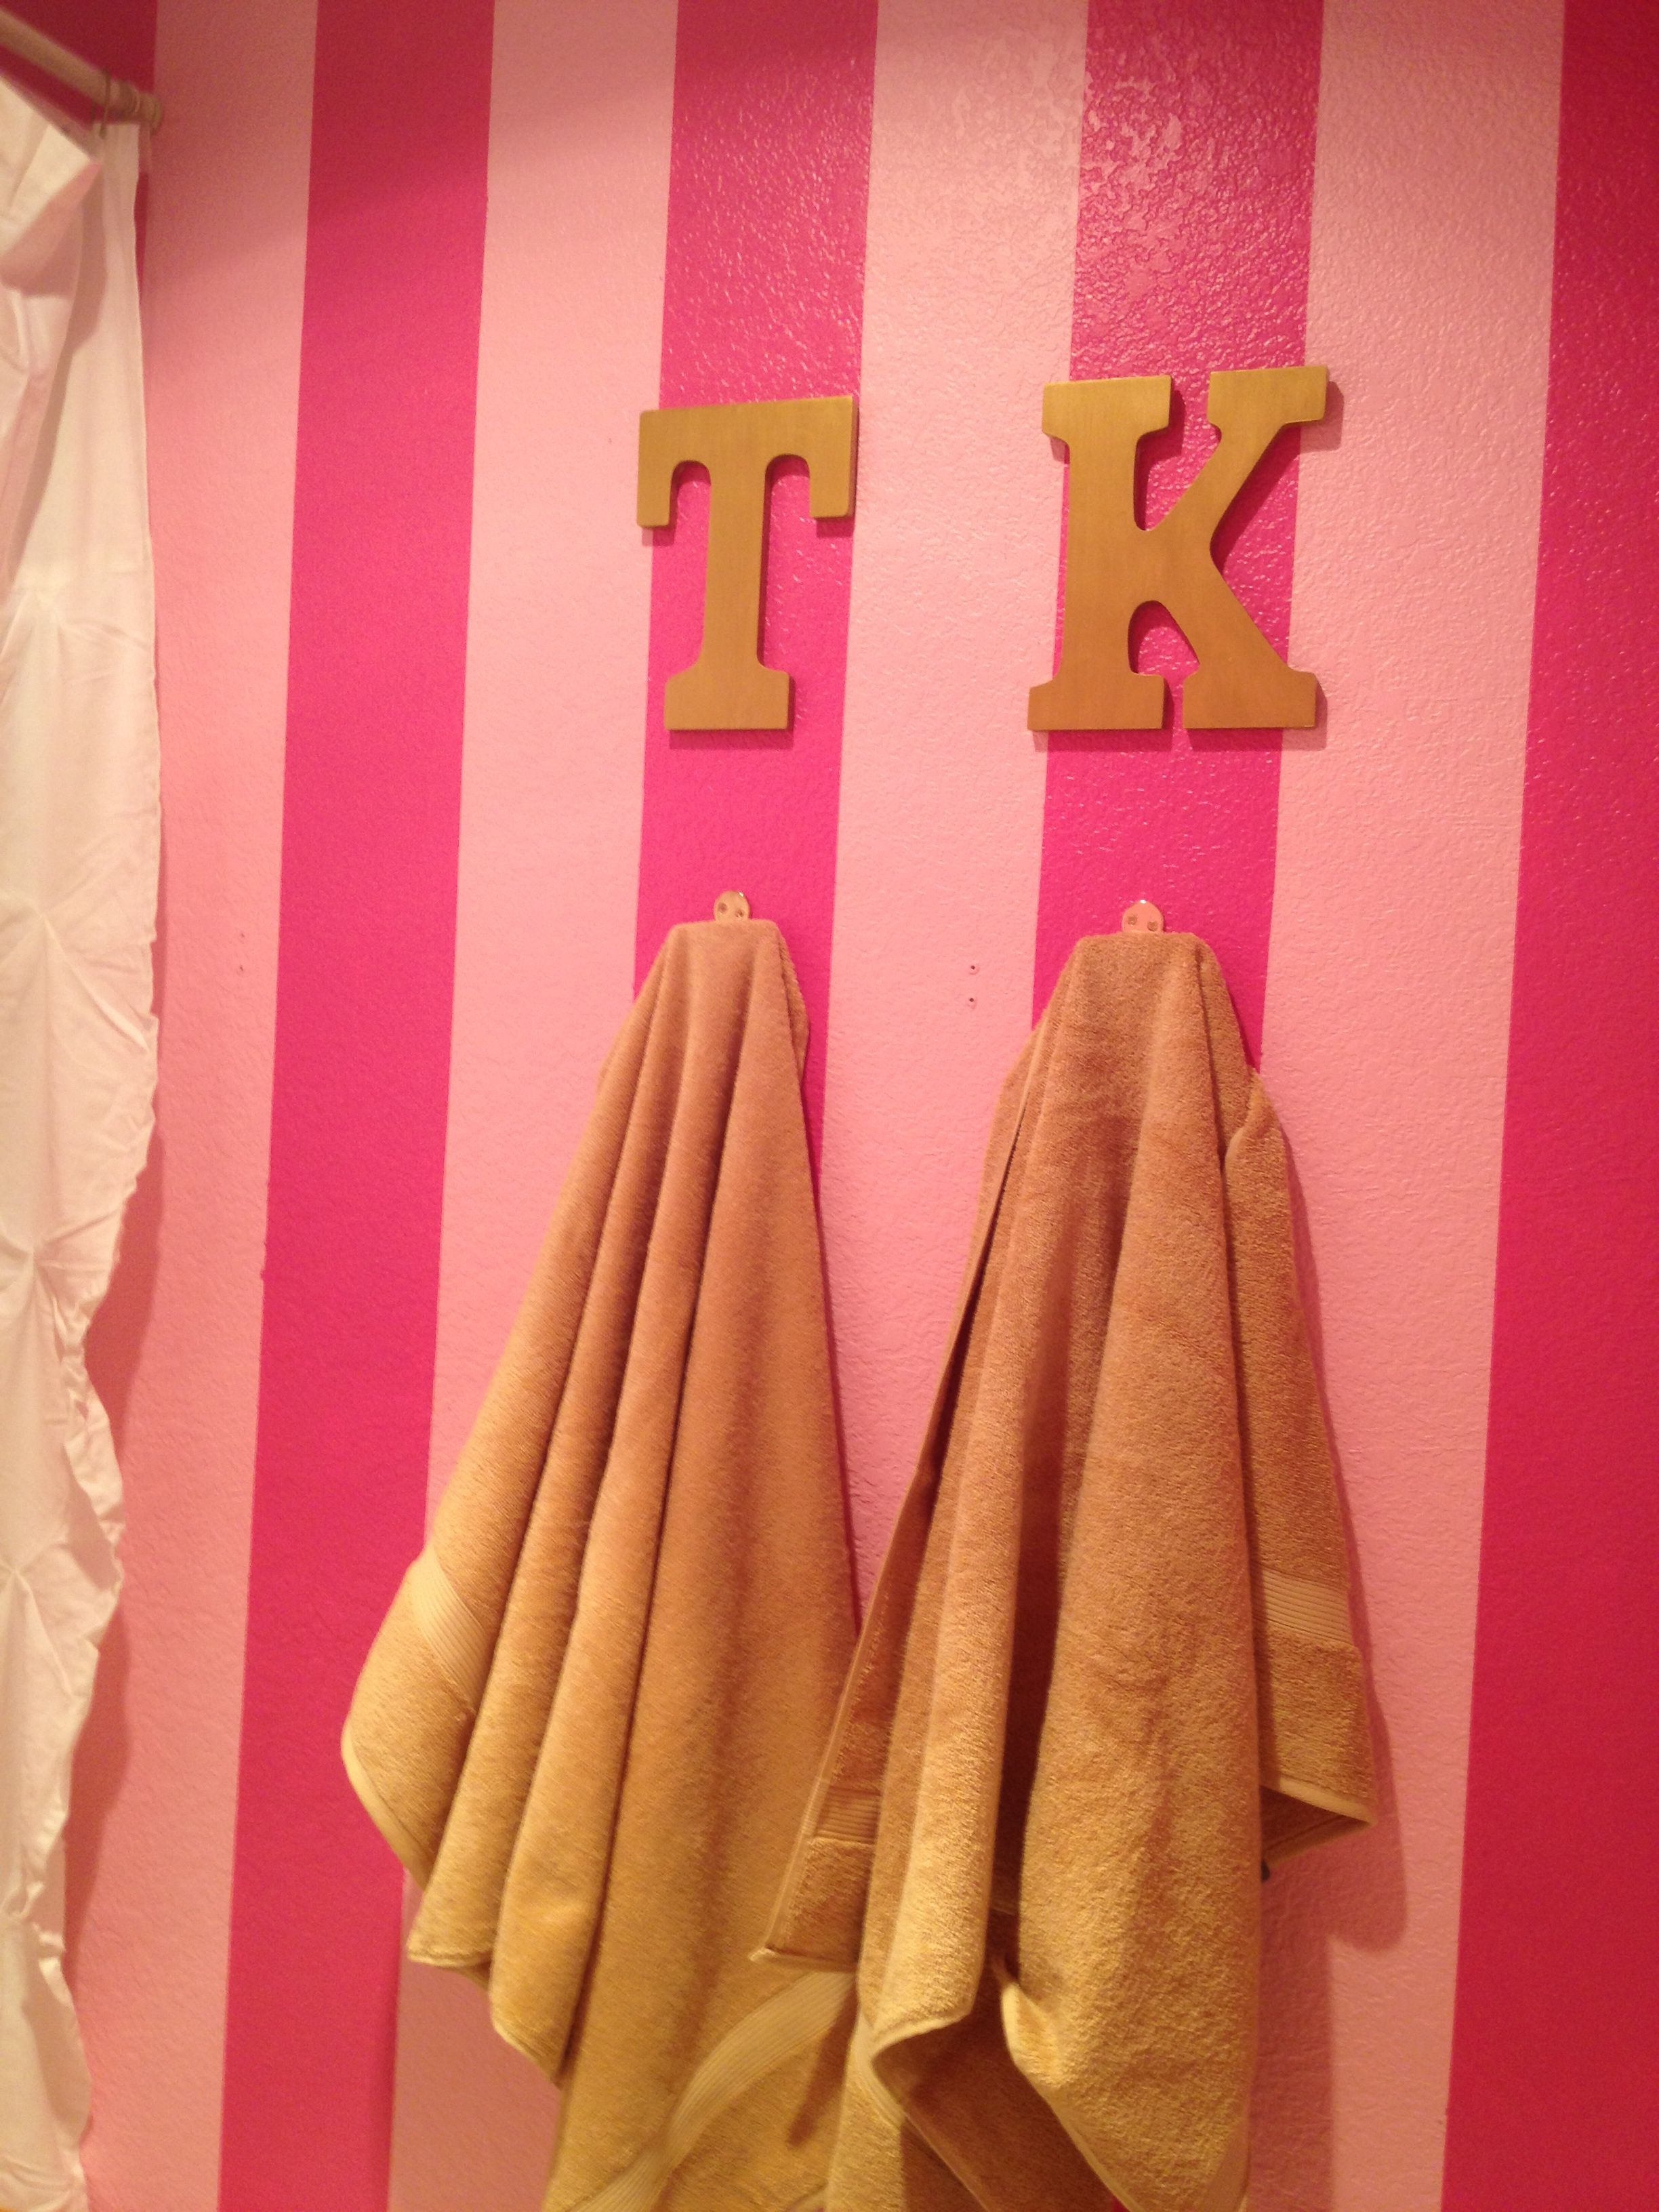 Pin By Eve Fitzgerald On Room Pink Bathroom Decor Girls Bathroom Pink Bathroom Victoria secret bathroom decor